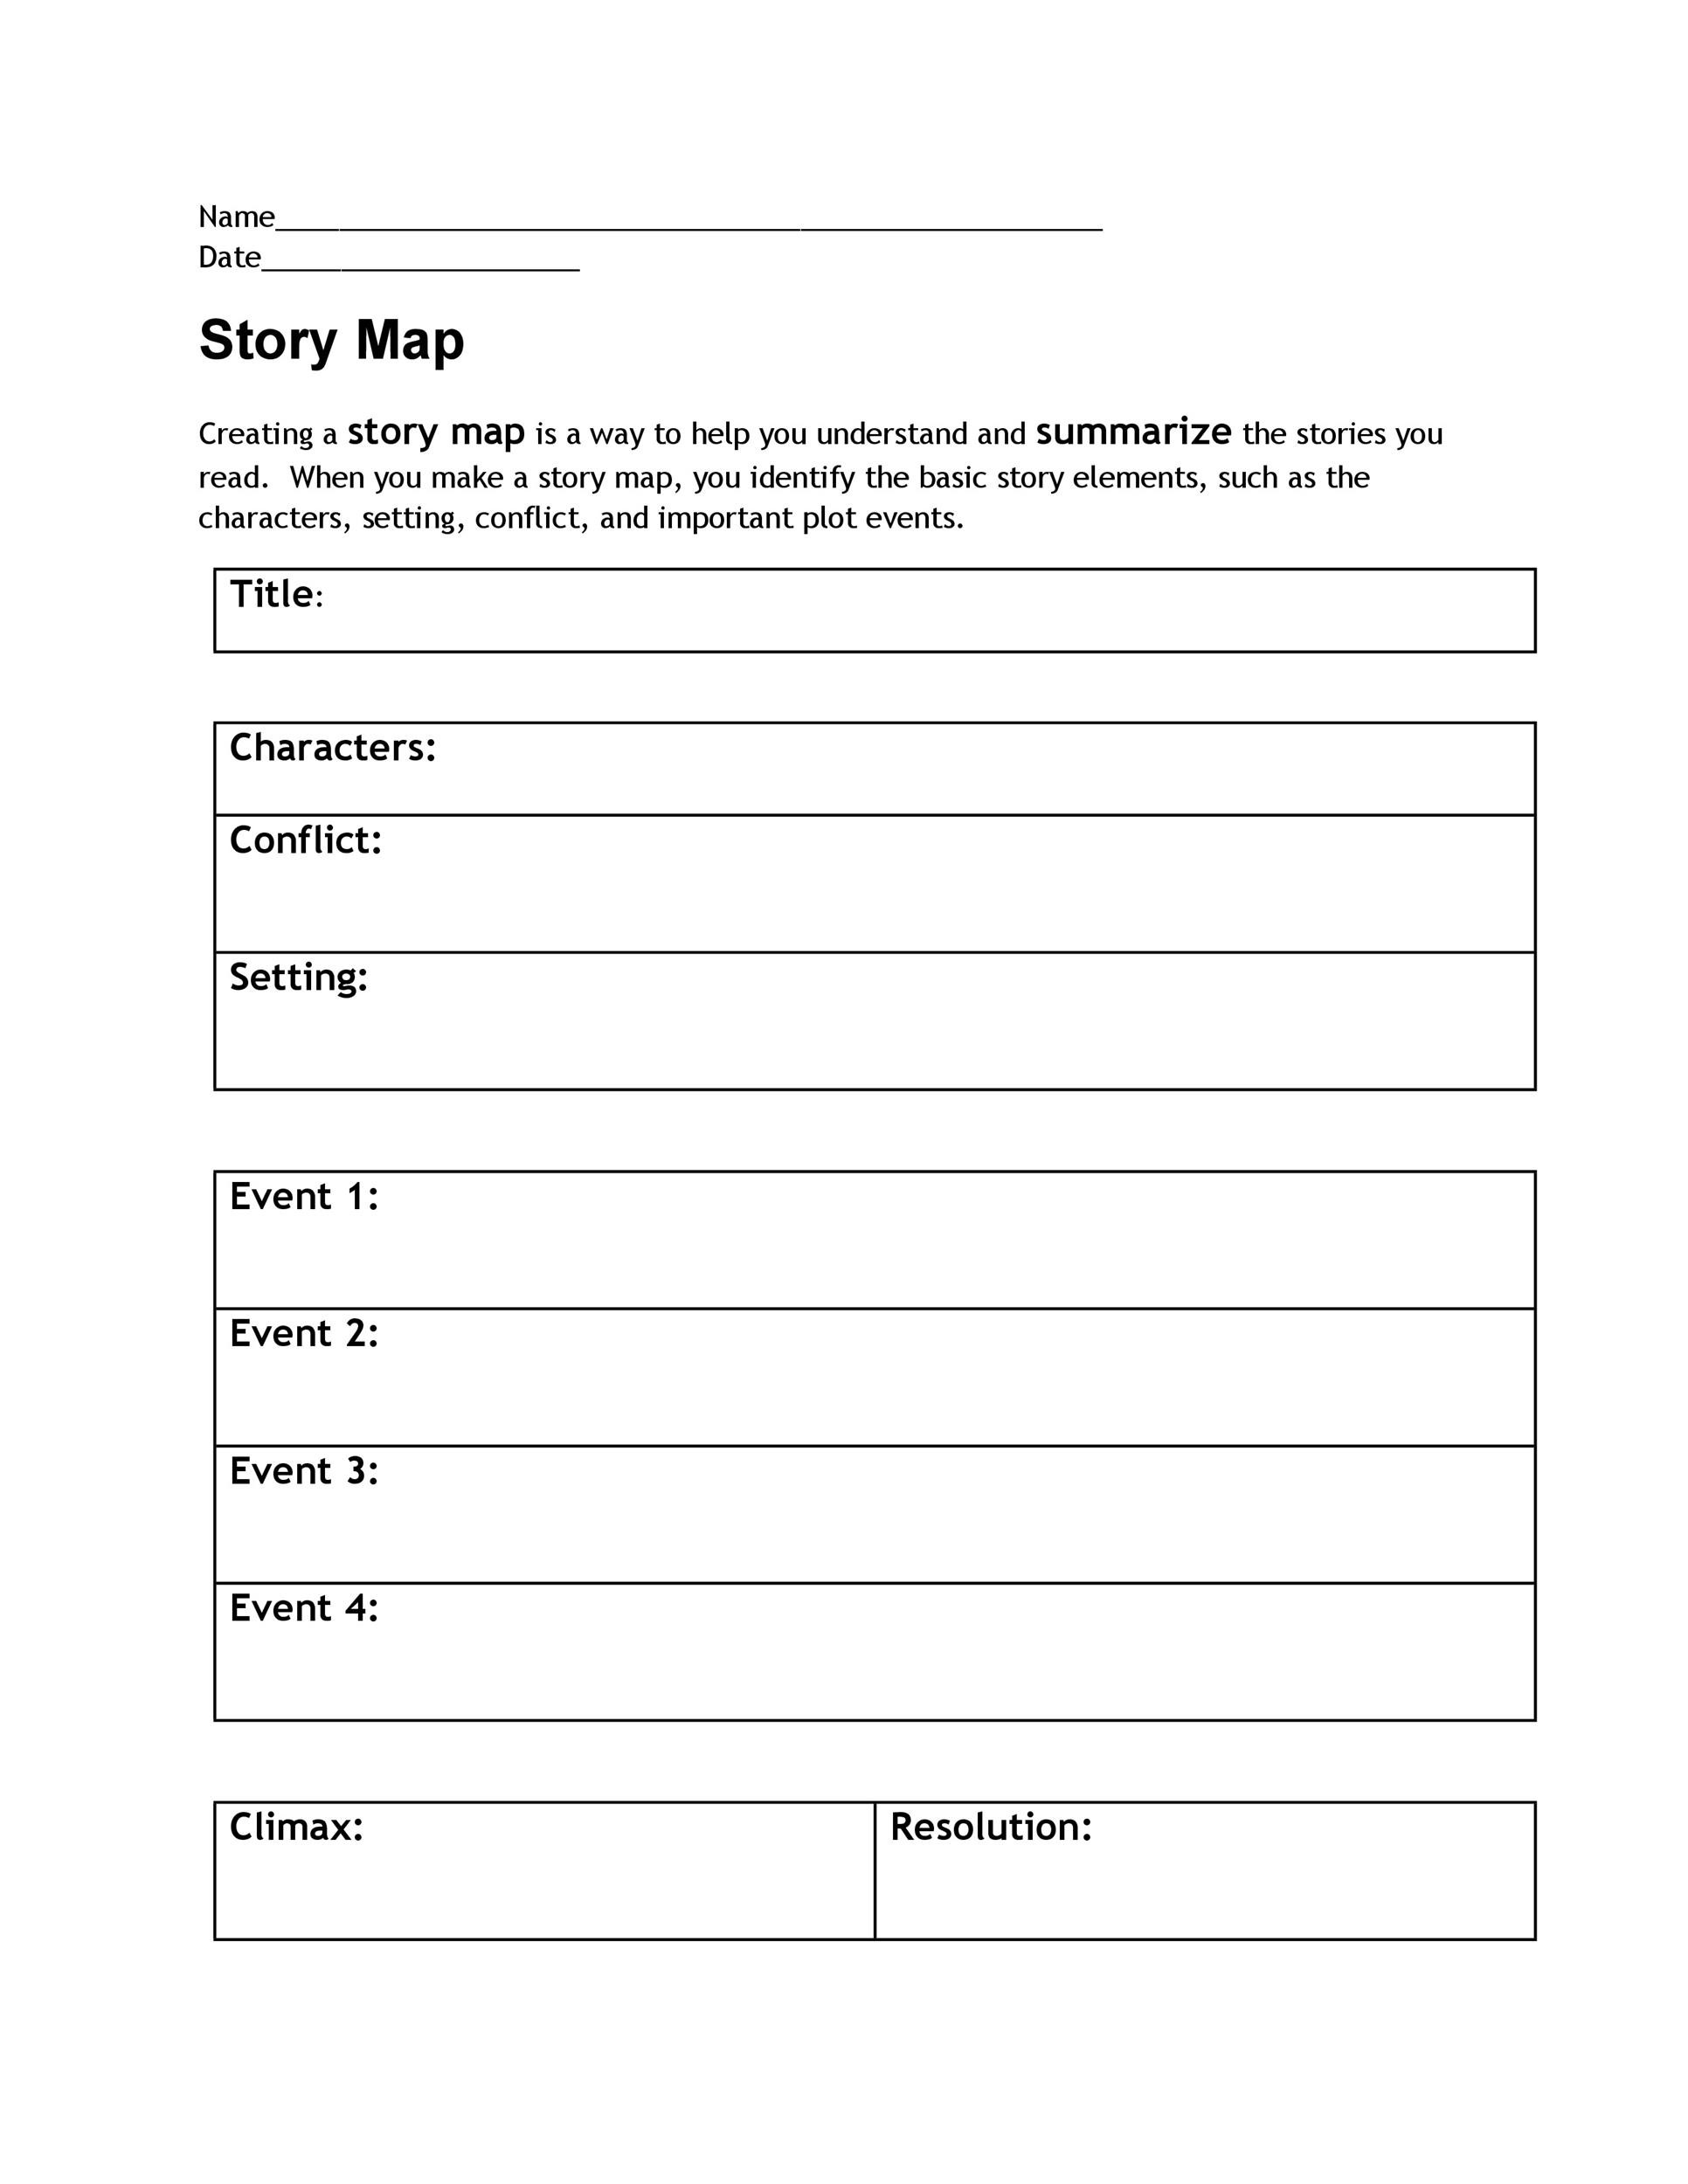 Free story map template 28